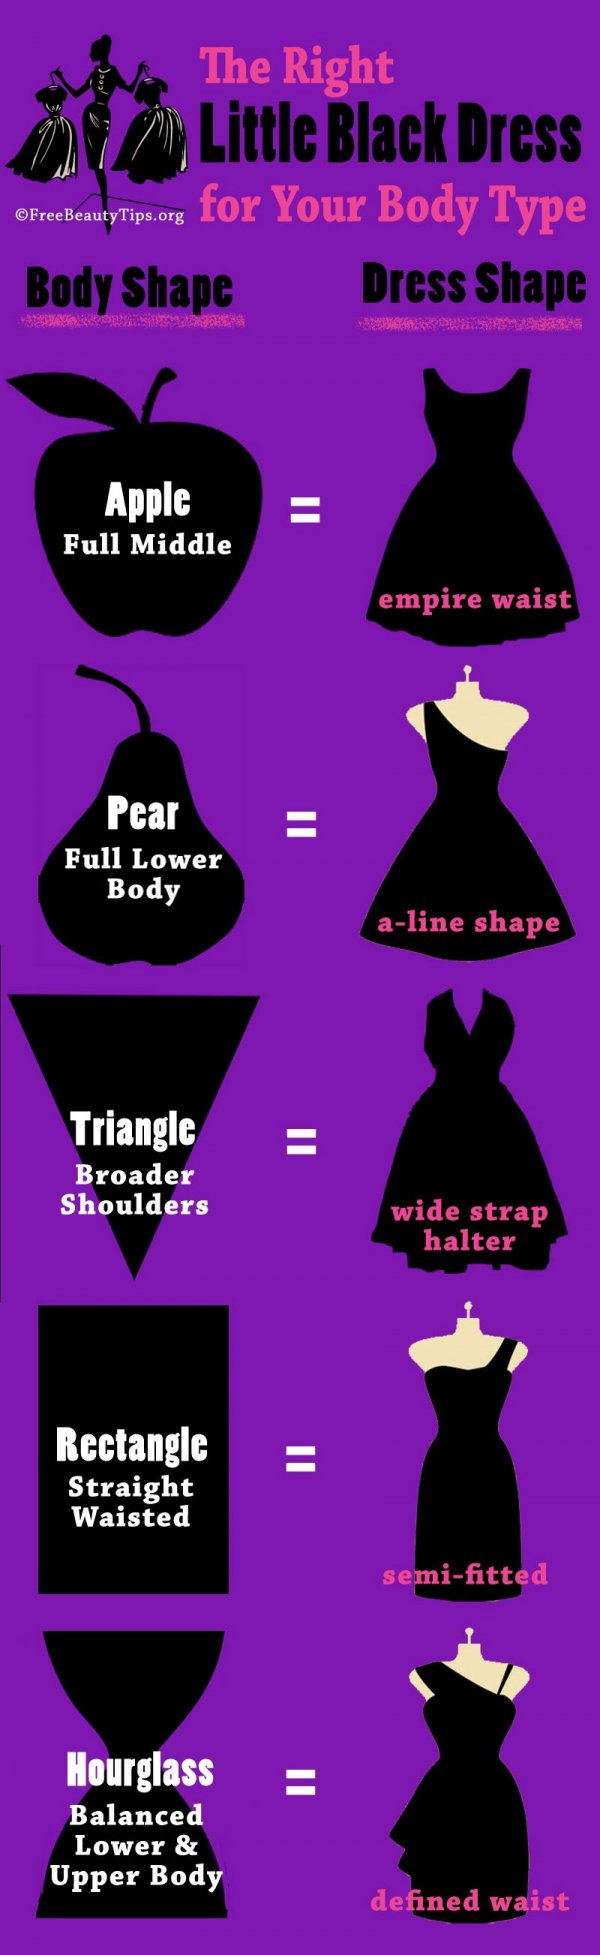 Little Black Dress Shapes by Body Type